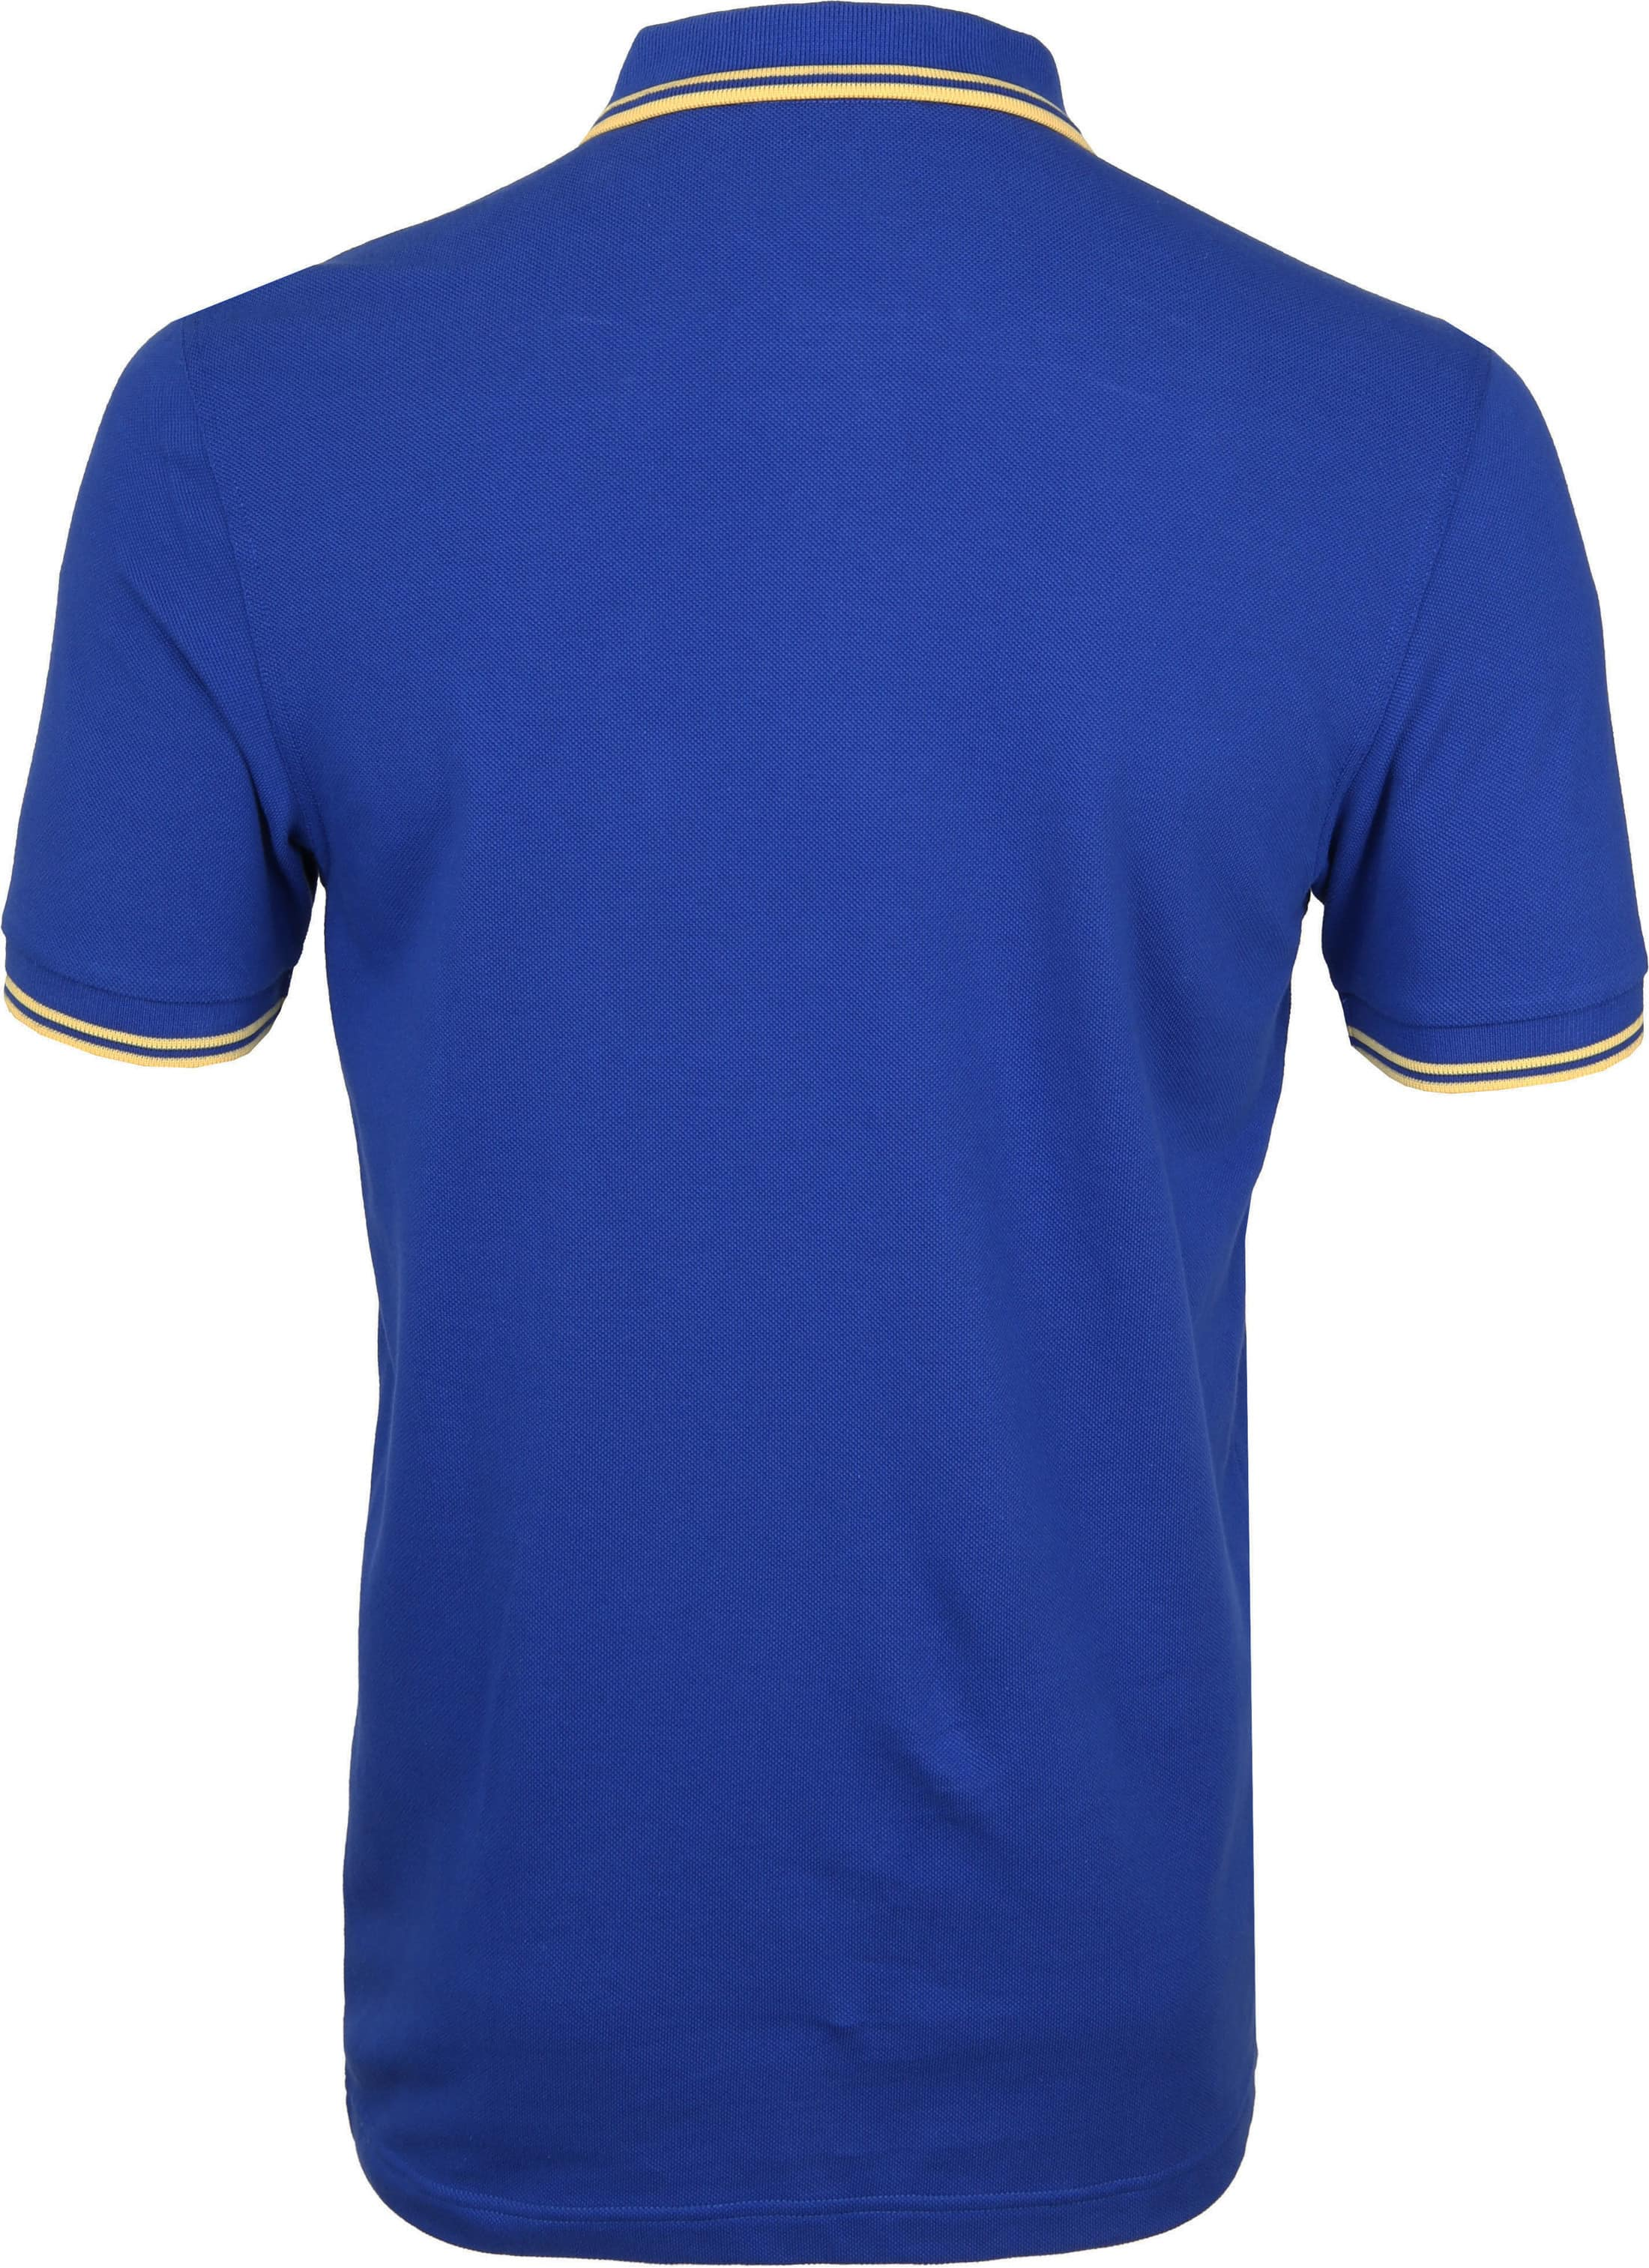 Fred Perry Polo Blauw G89 foto 2